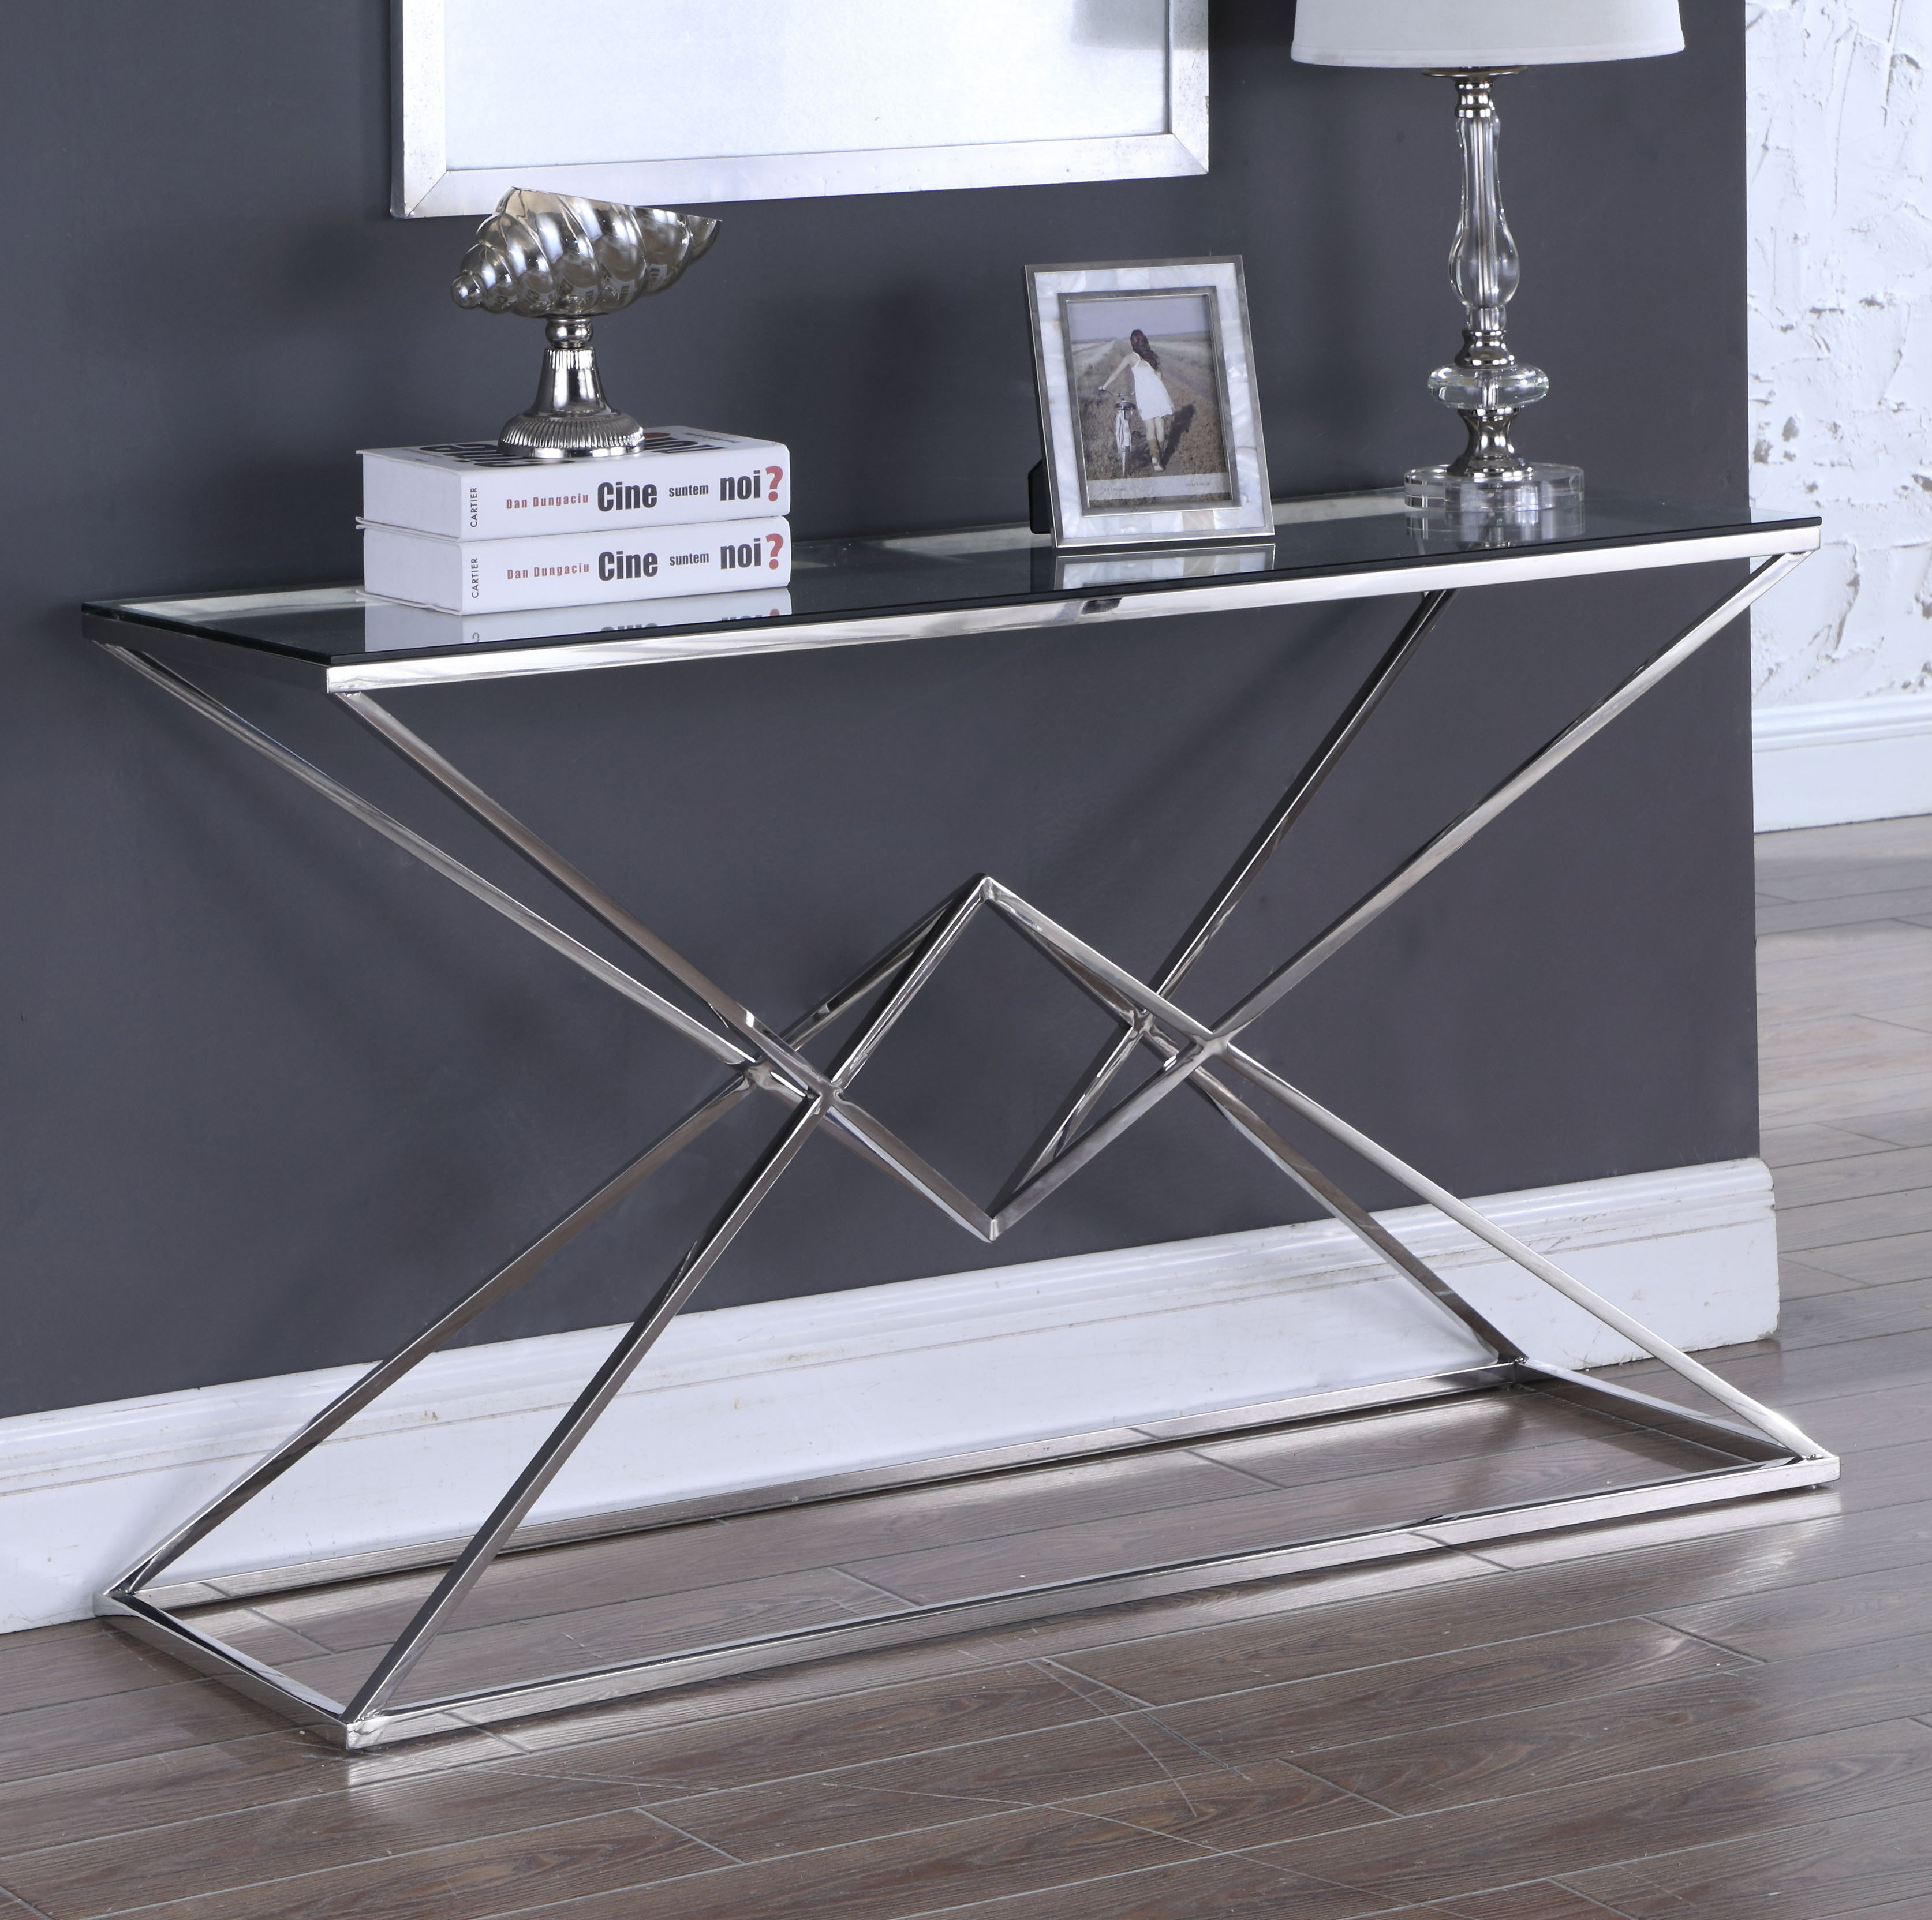 orren ellis jhoana console table hooper accent narrow side with shelves west elm glass lamp pottery barn living room minsmere cane round chair and half coffee art dark grey